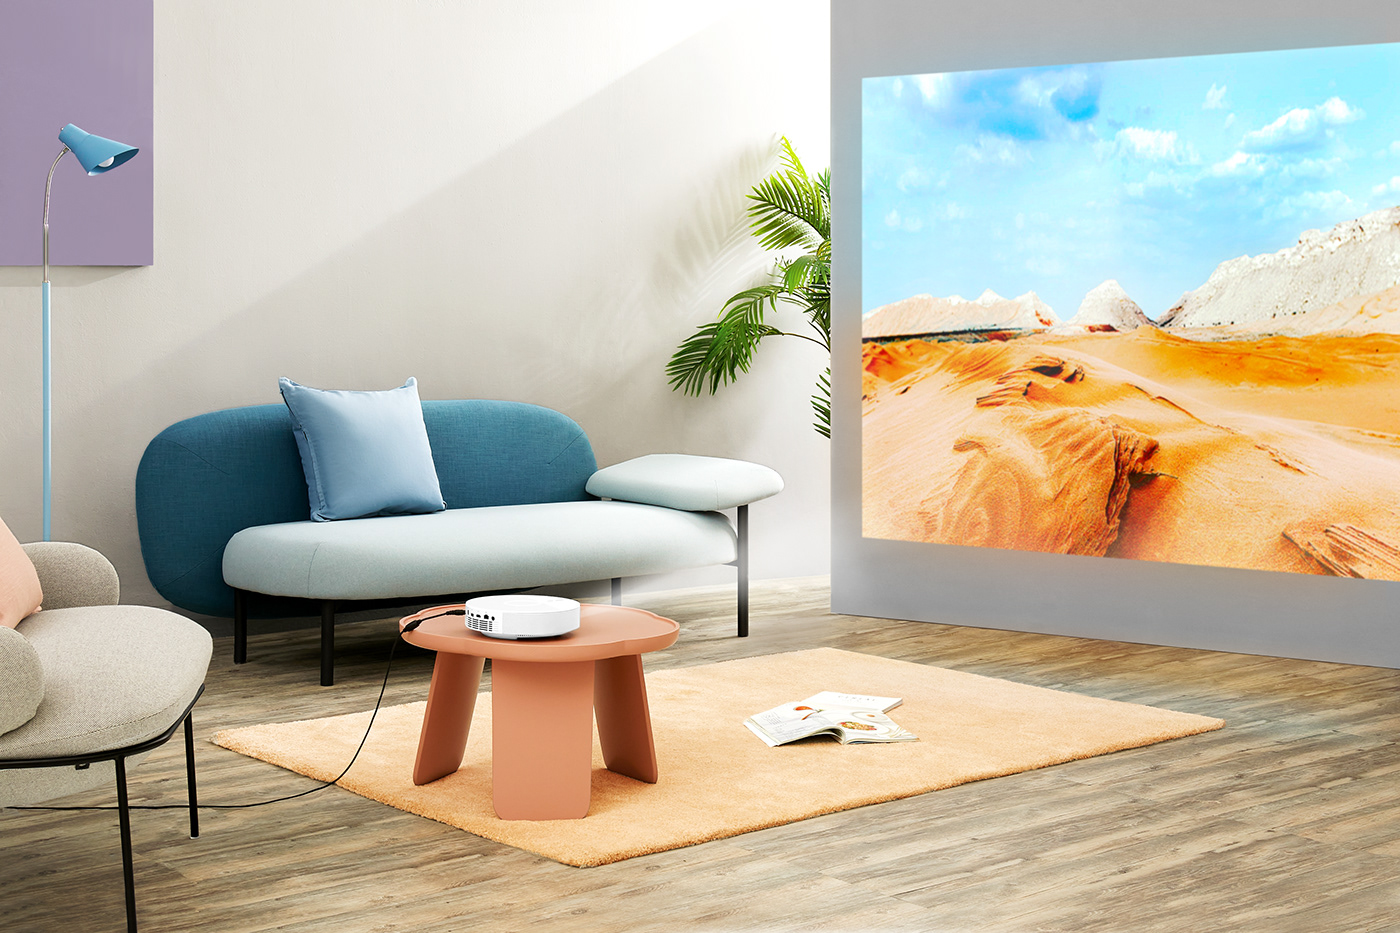 art direction  CMF Design commercial design high quality industrial Projector Renderings Smart visualization